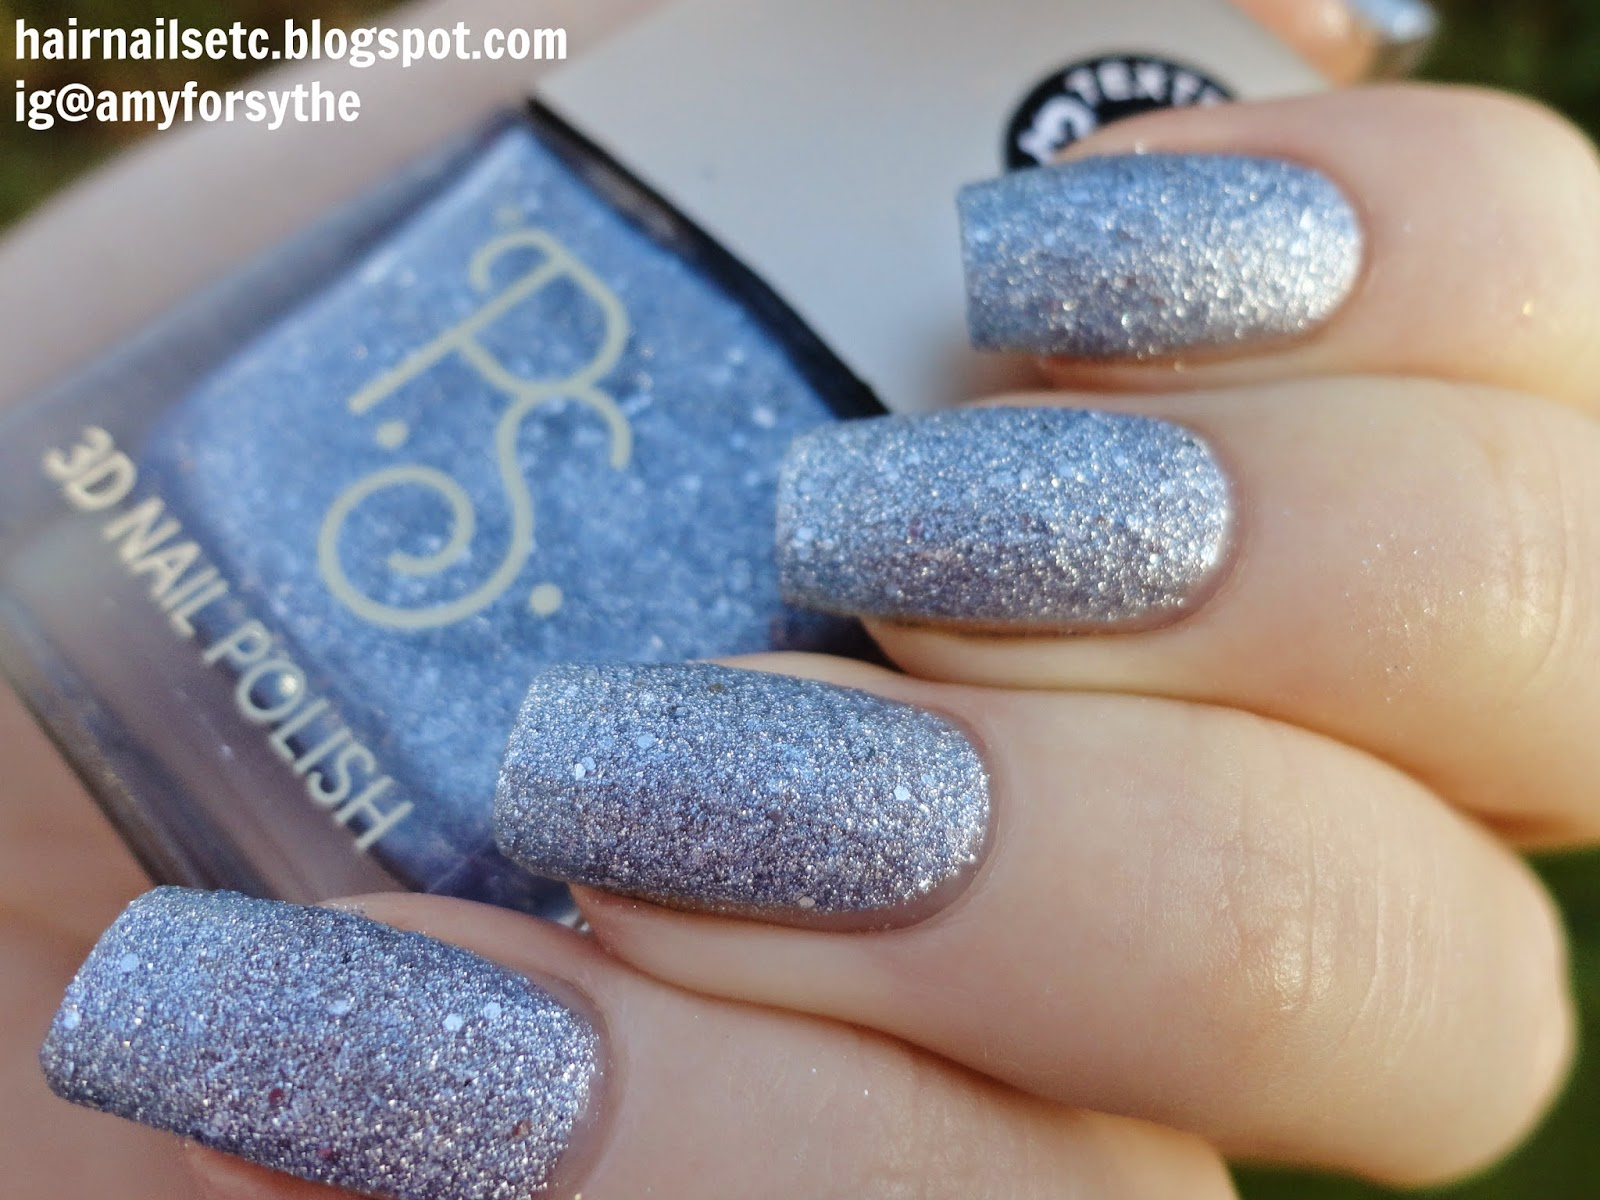 Primark PS 3D Texture Nail Polishes Swatches and Review Silver Blue